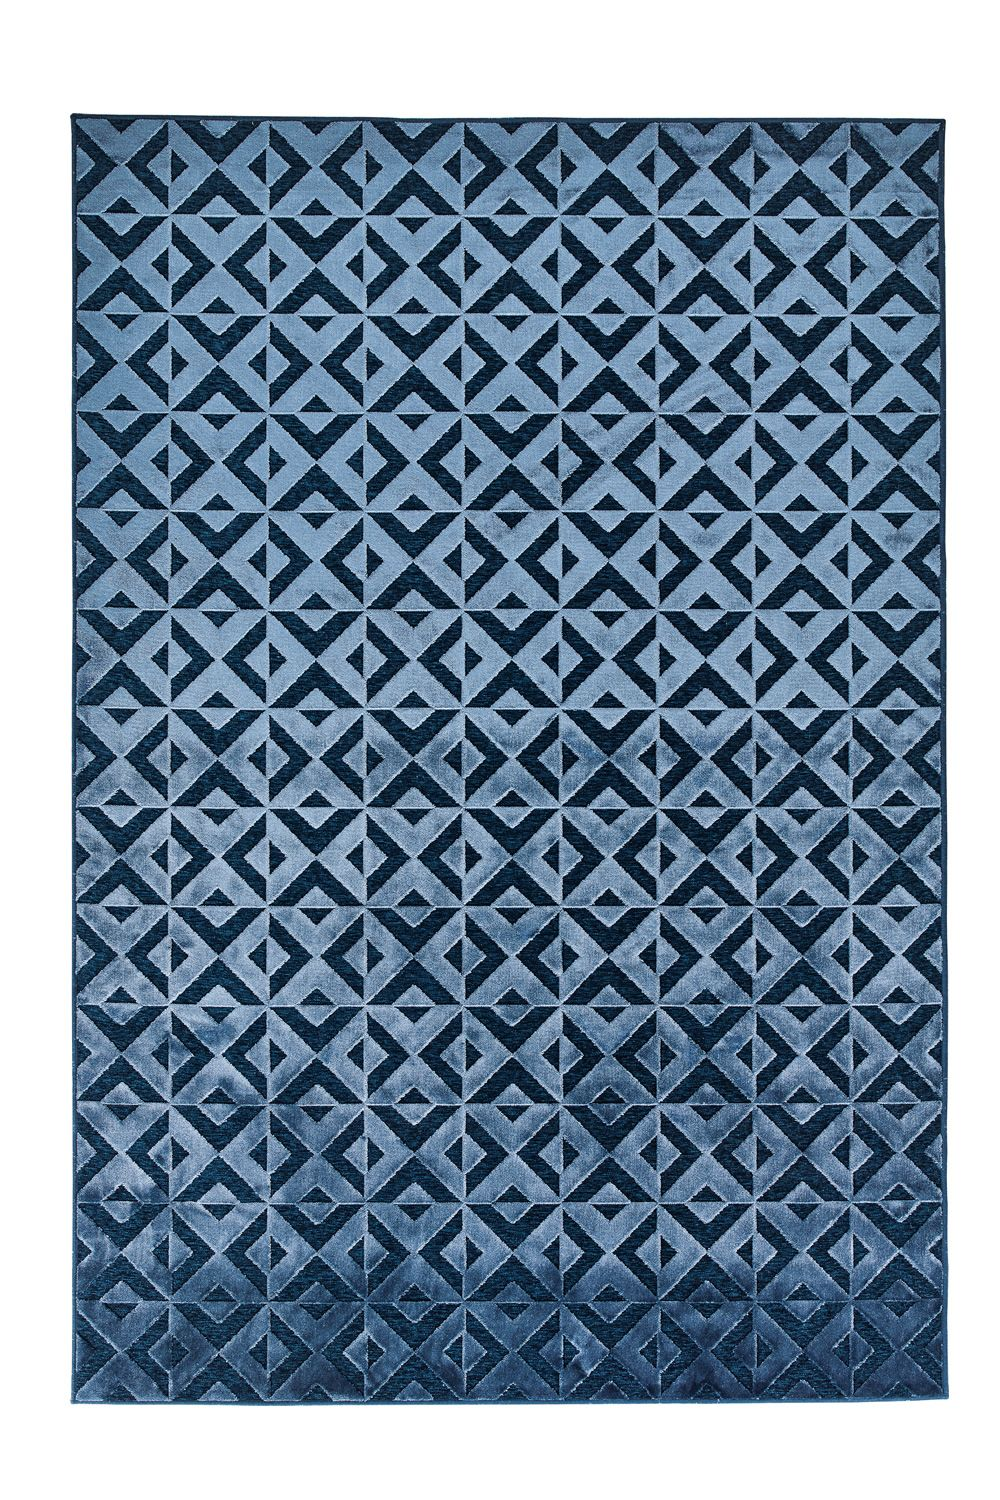 Contemporary rug, blue version